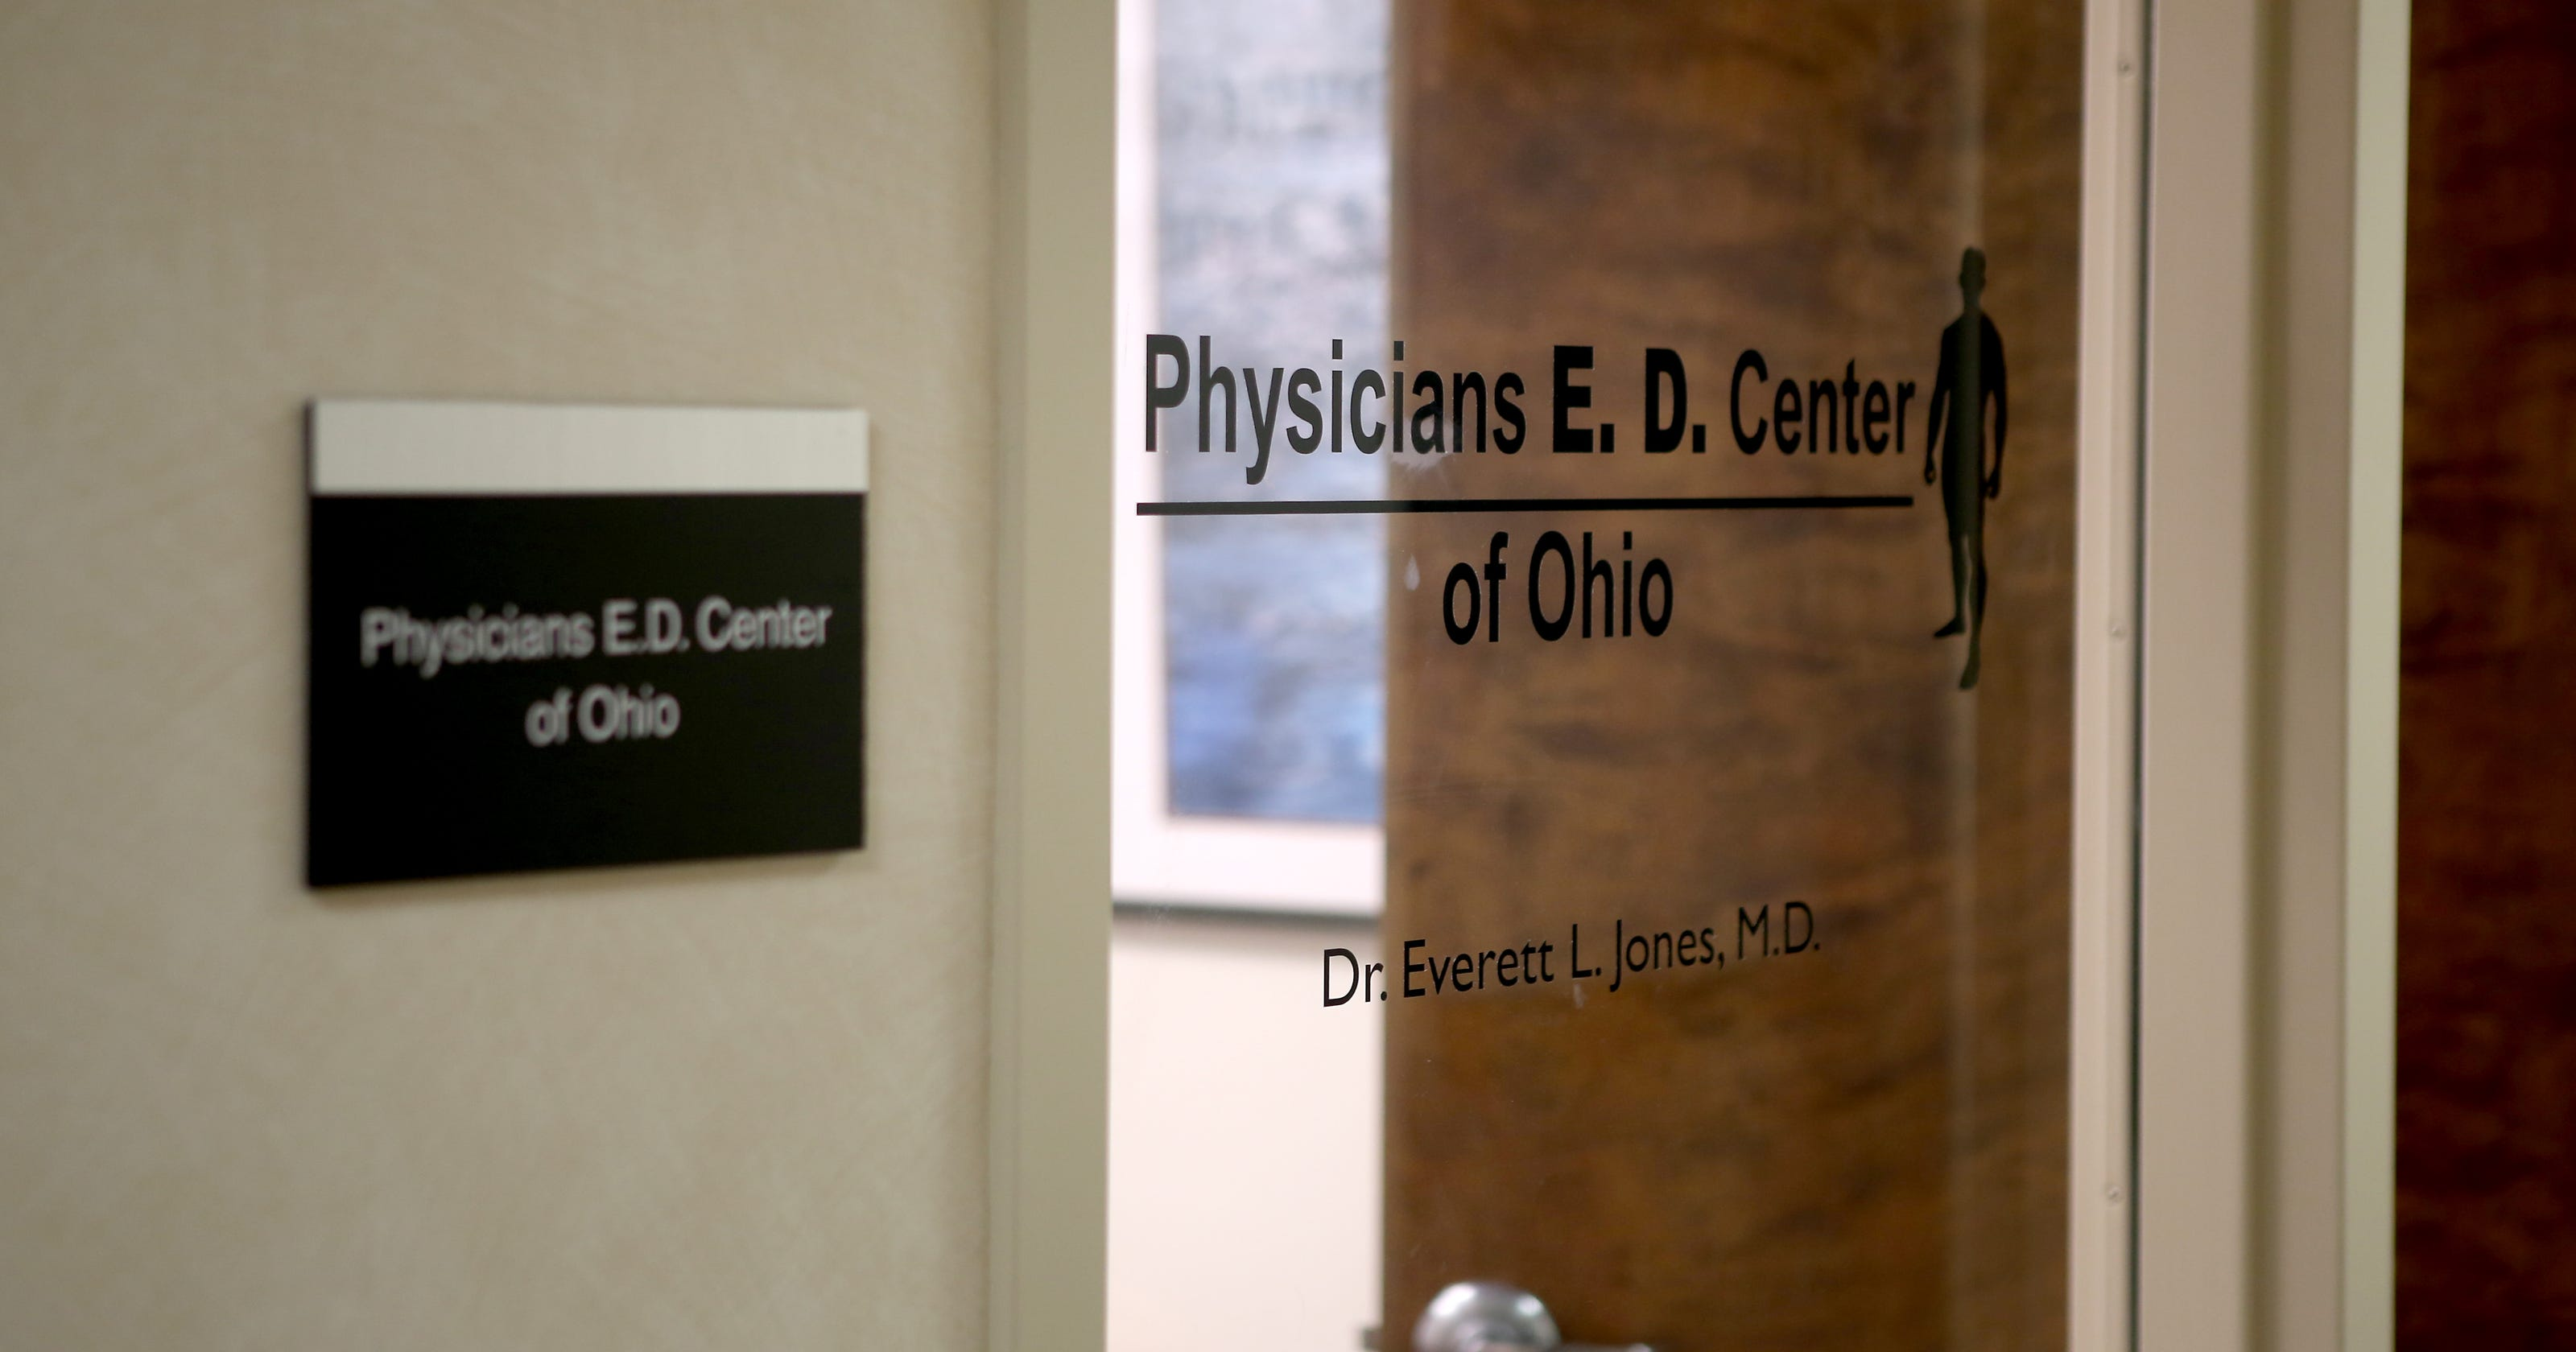 Urologist complained to medical board about ED clinic